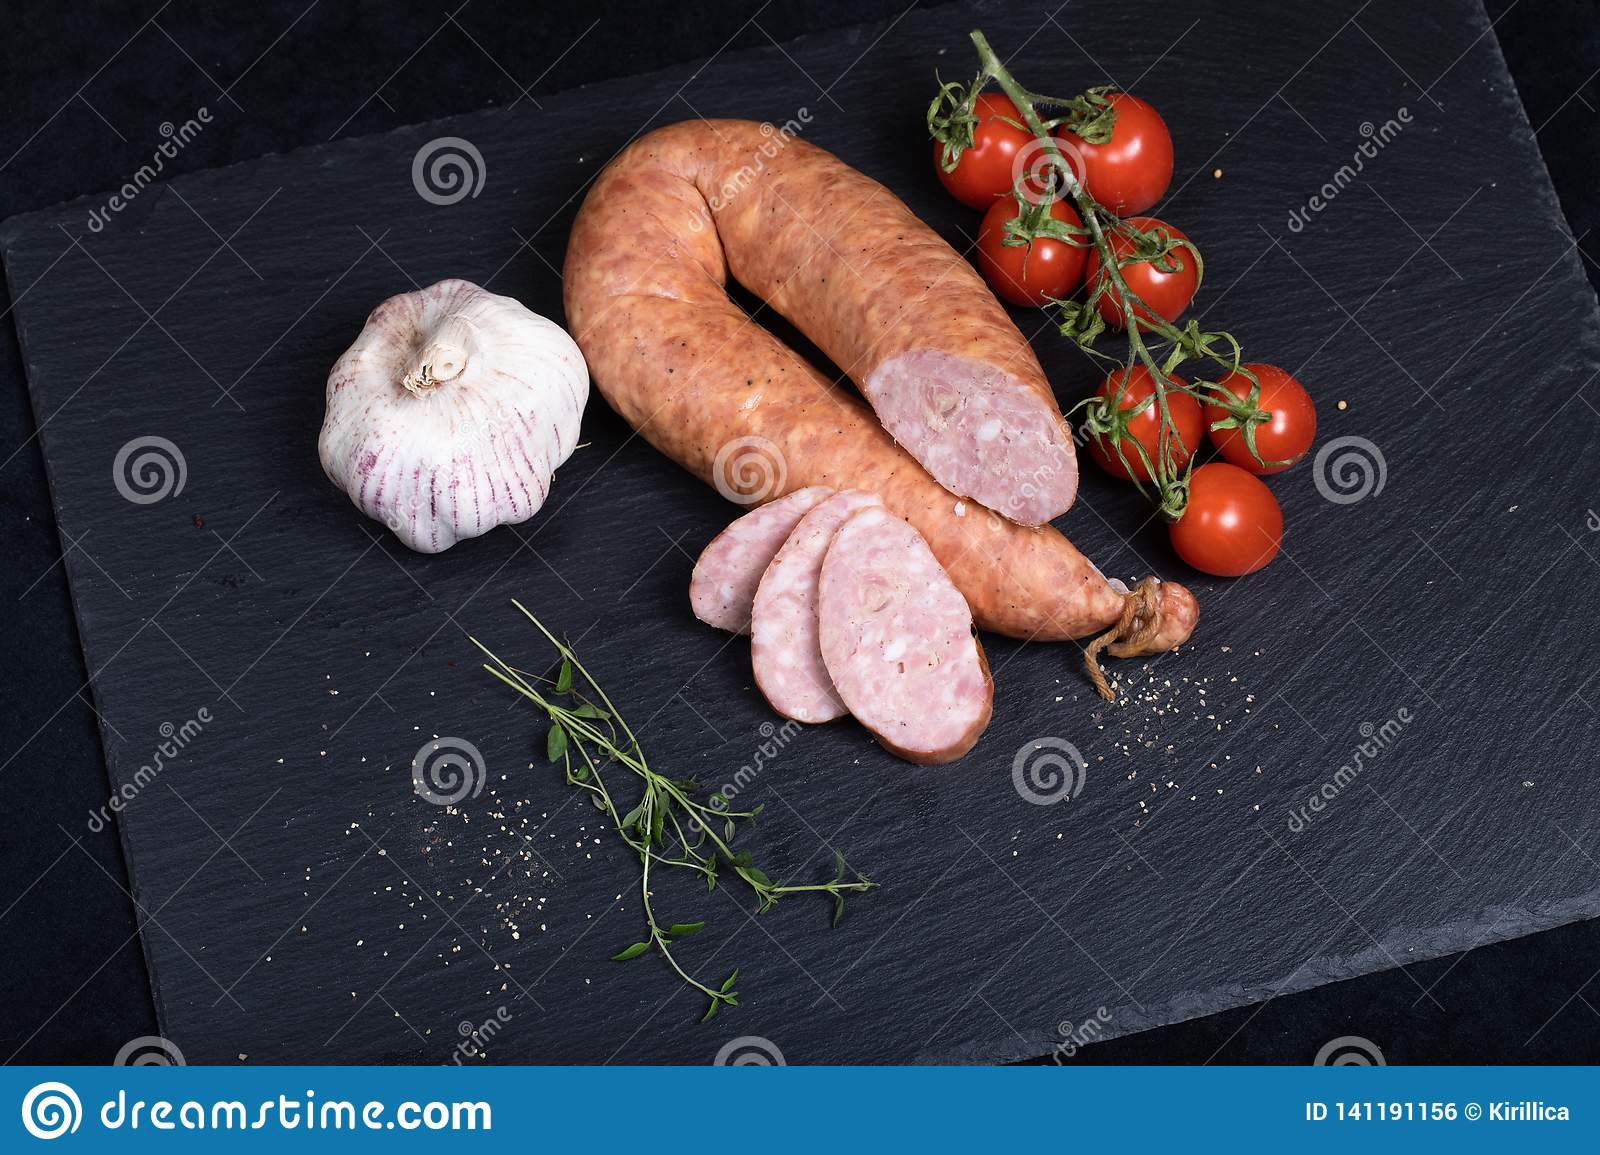 Smocked sausage on black stone plate